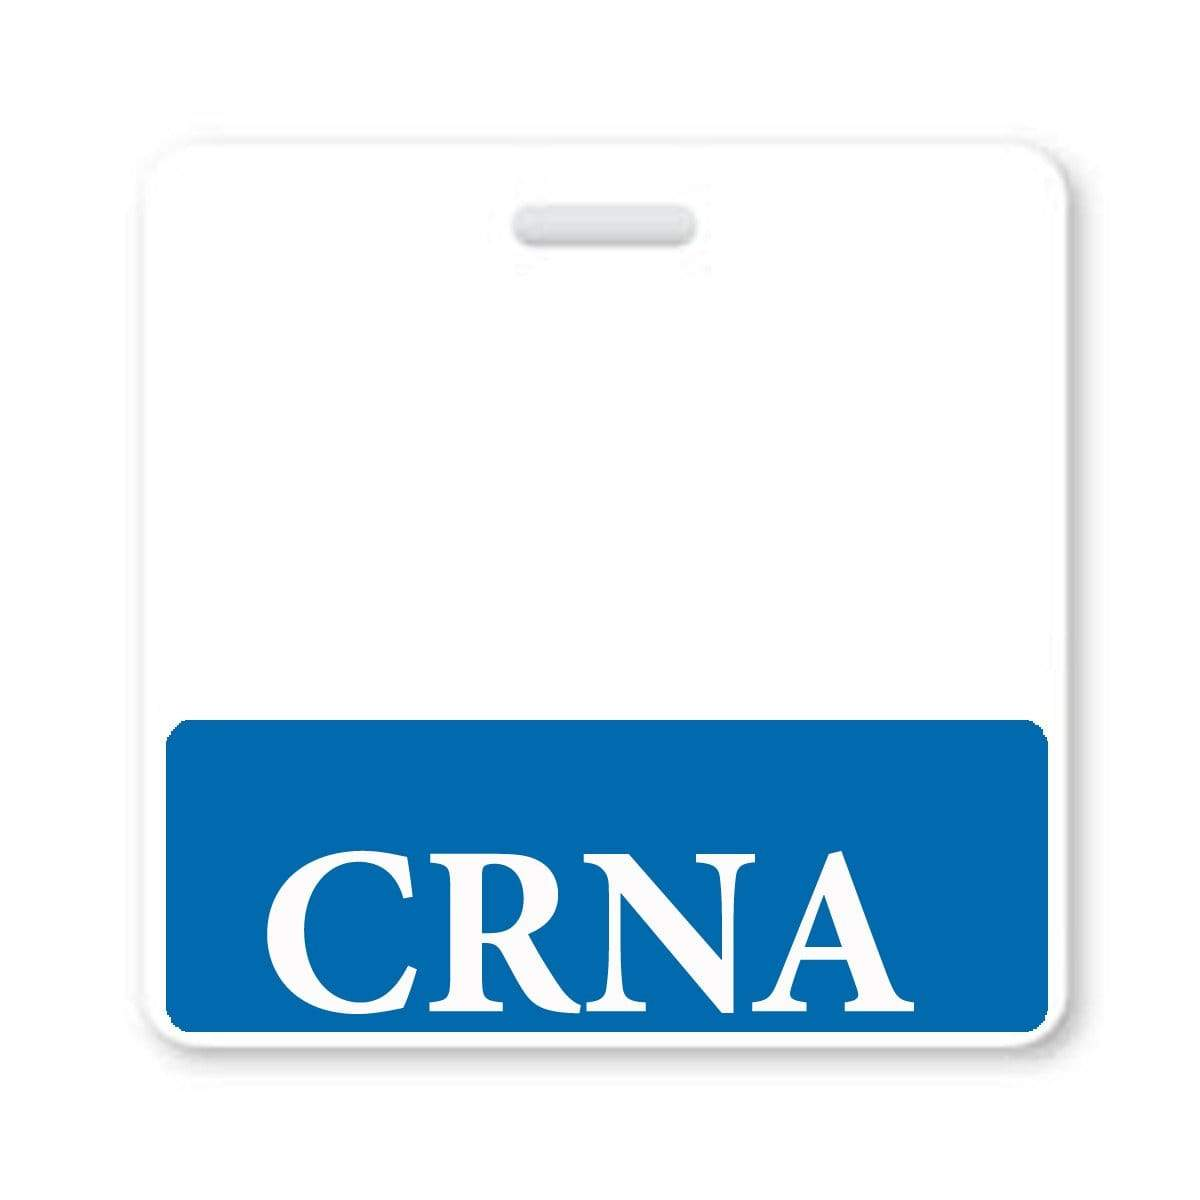 CRNA Horizontal Badge Buddy with Blue Border